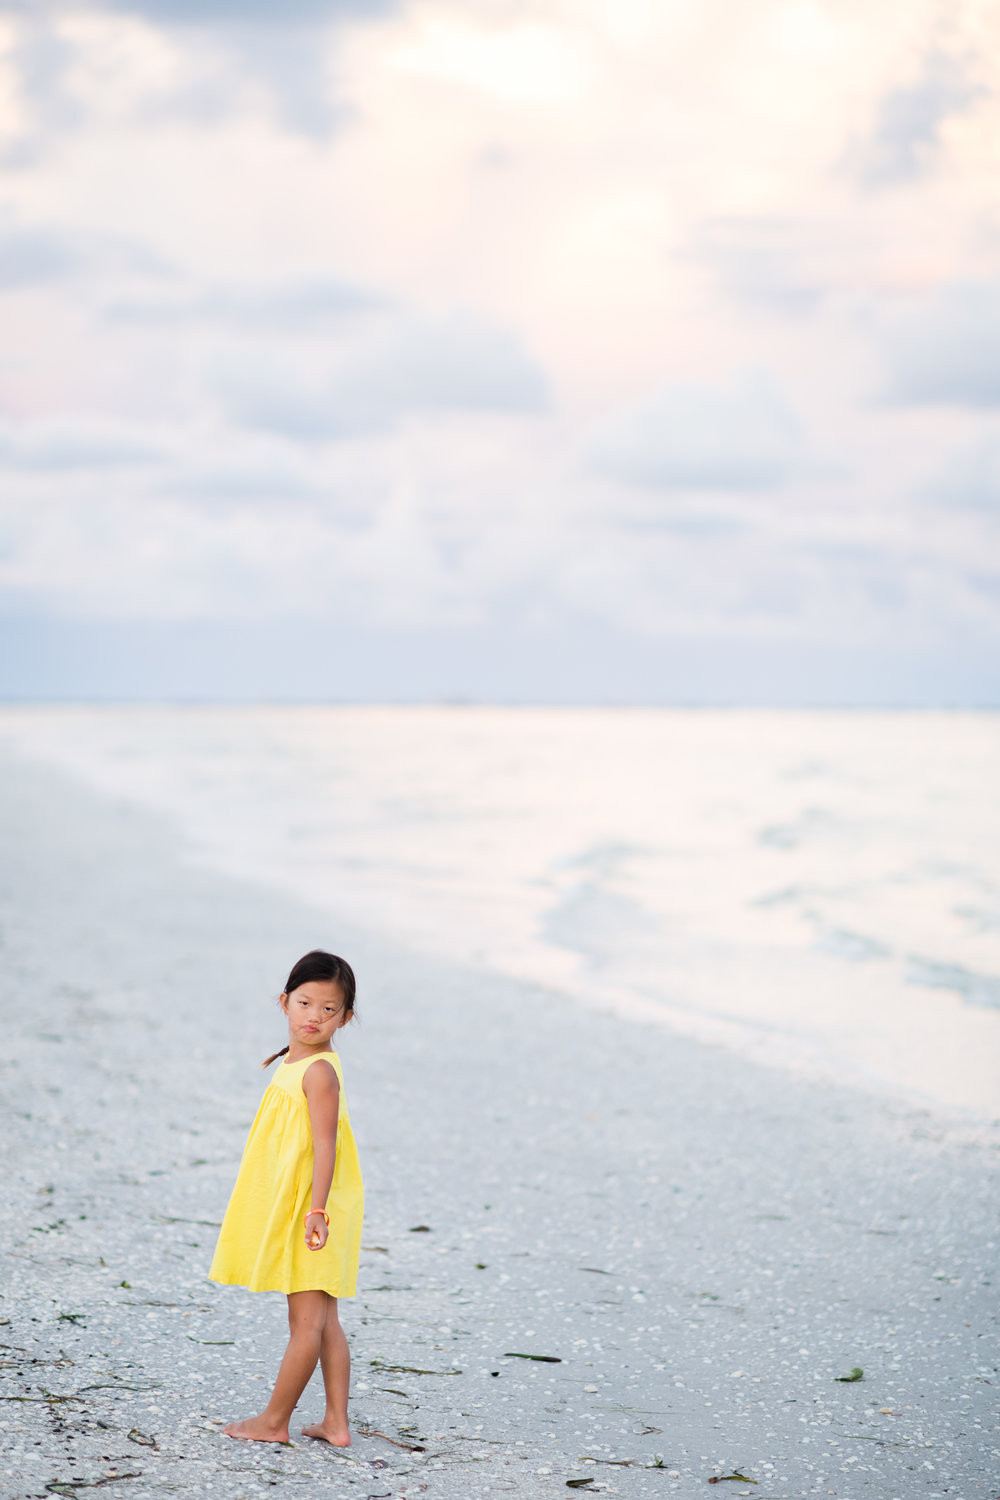 sanibel-island-beach-feeling-sick-2.jpg